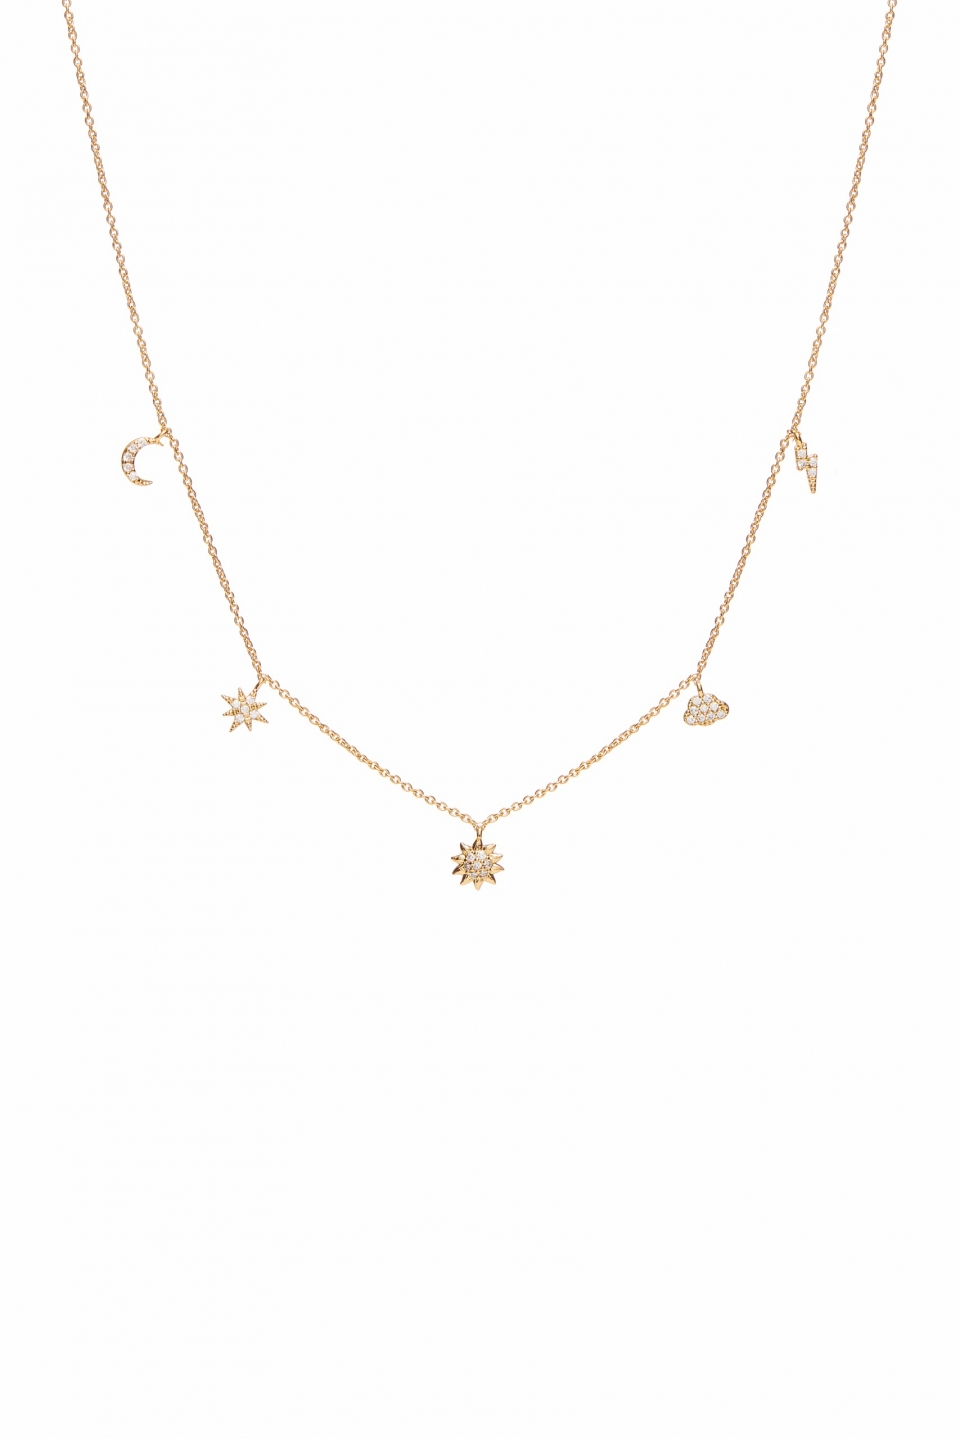 Lish Gold Charm Necklace